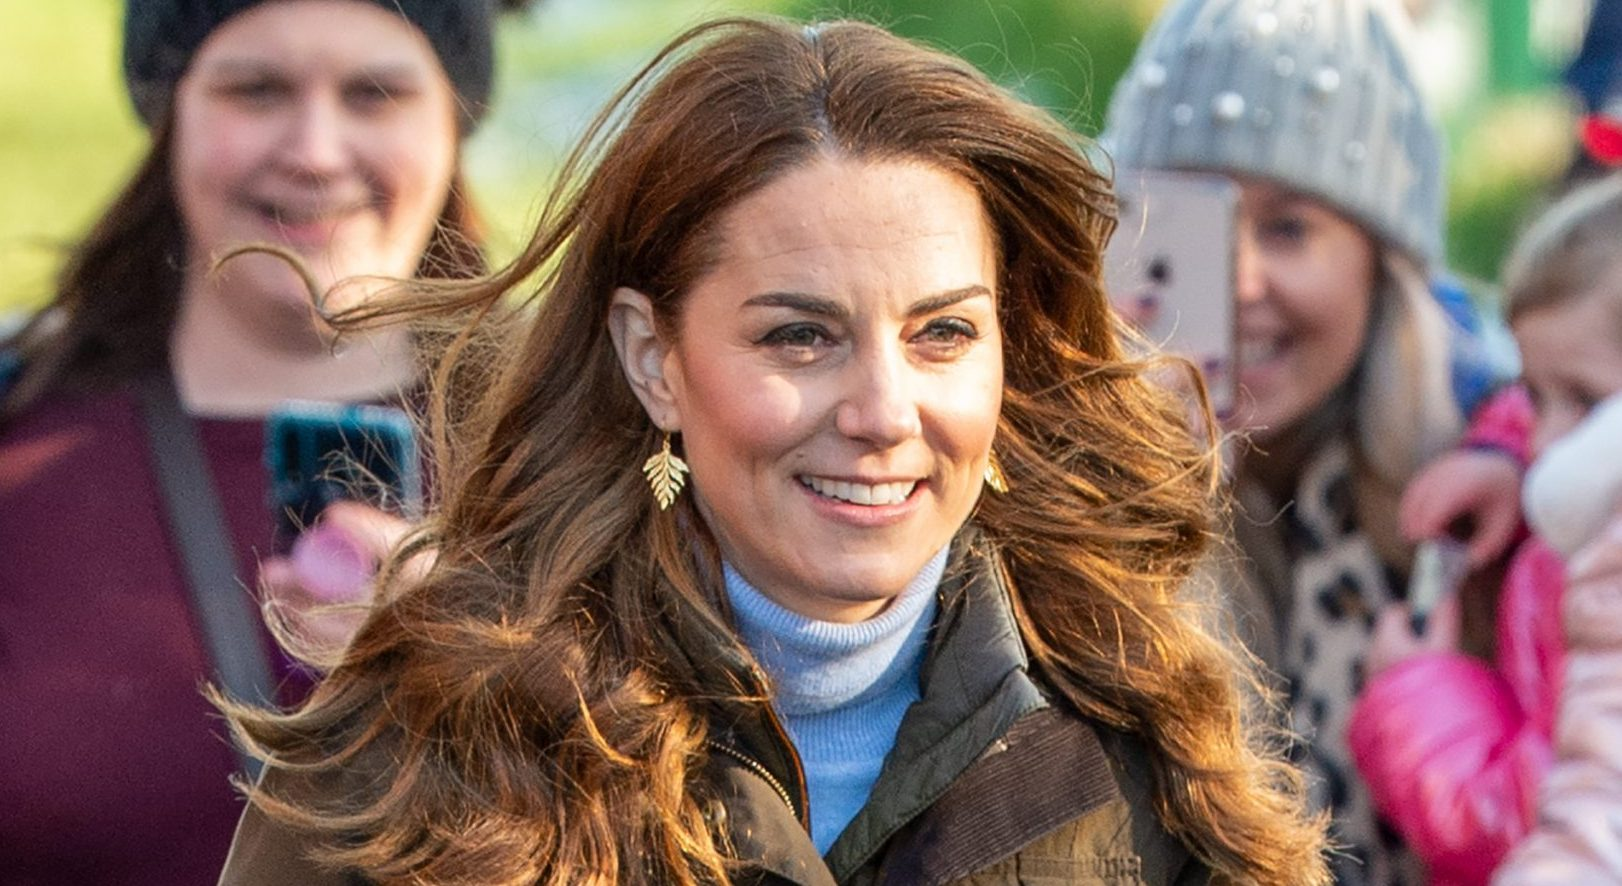 The Duchess of Cambridge looks 'perfect' in M&S trainers and Zara trousers that cost just £6!